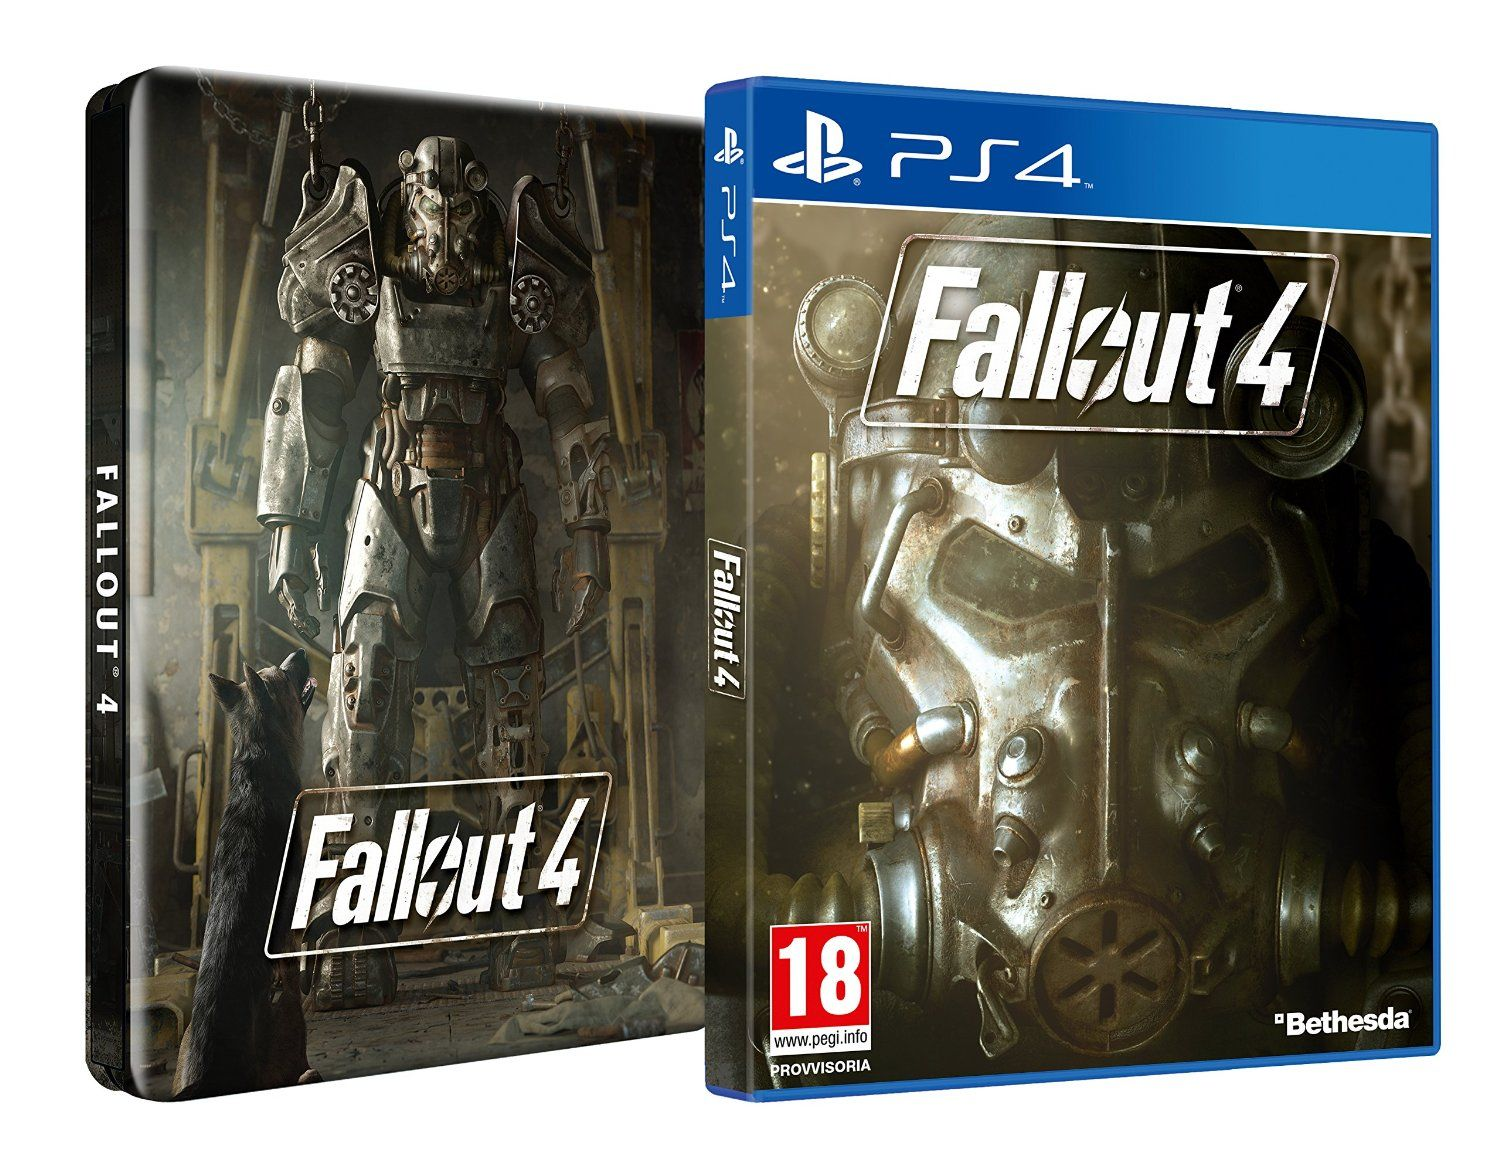 Fallout 4 Steelbook Edition (PS4) - 1